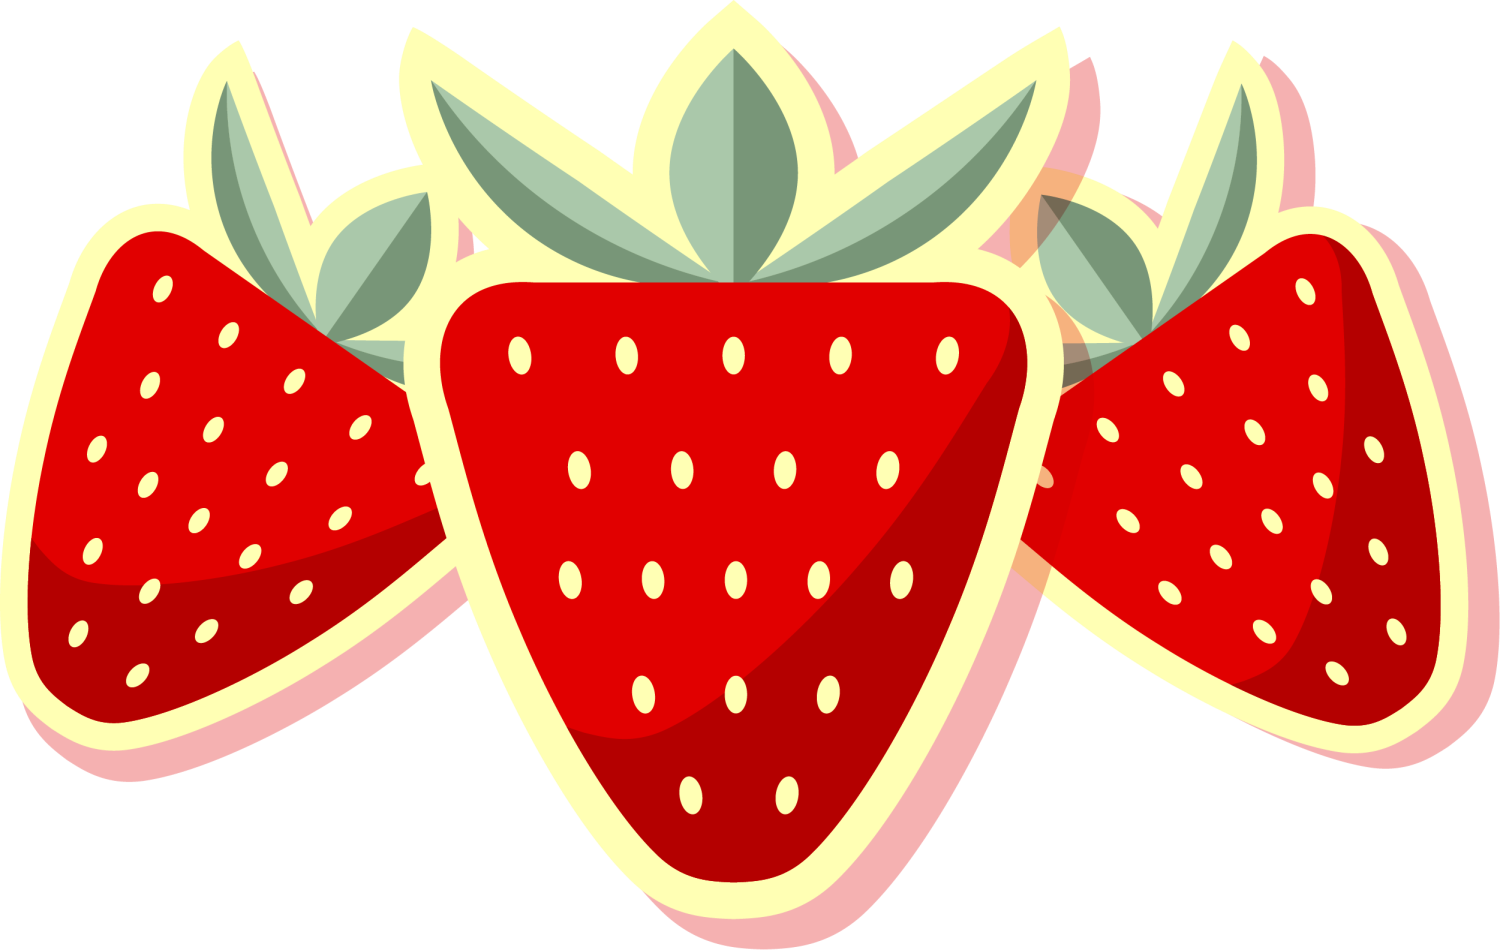 Watermelon clipart strawberry. Cheesecake fruit preserves illustration